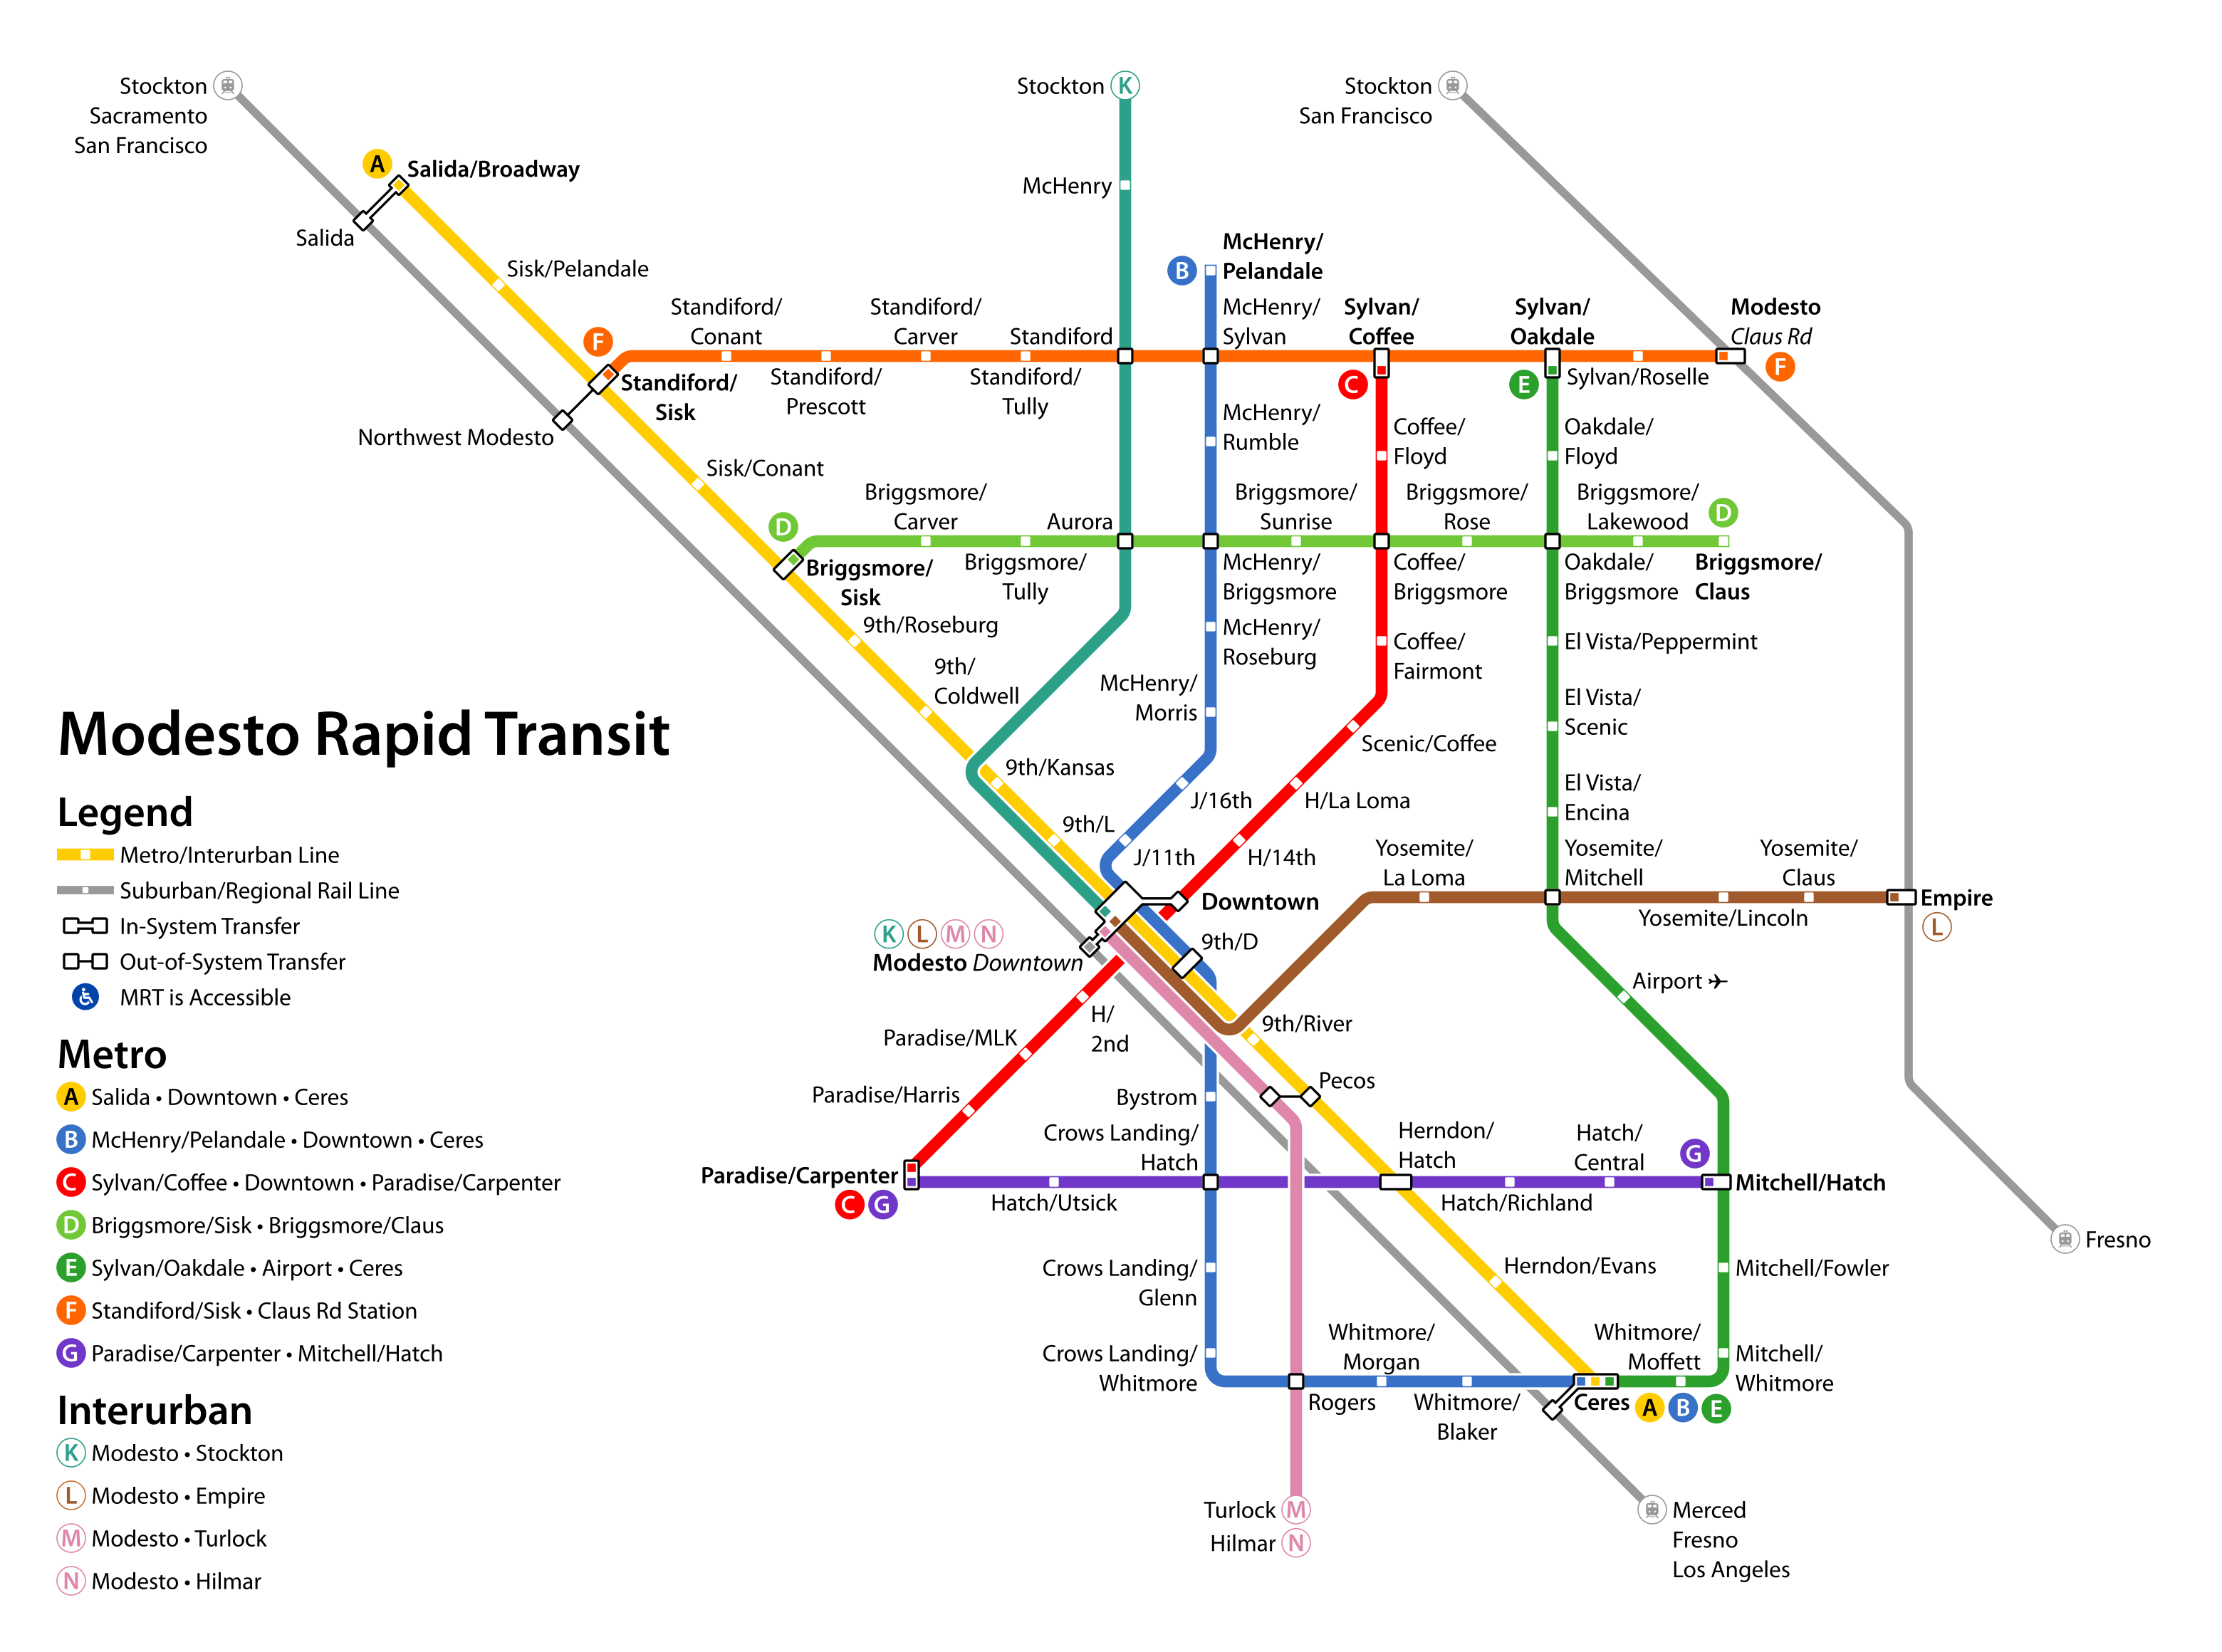 Modesto Rapid Transit | Theodore Ditsek on map of pinole, map of twain harte, map of mcclellan, map of pt hueneme, map of don pedro, map of copperopolis, map of orosi, map of thousand palms, map of long beach city, map of altamont pass, map of turlock lake, map of la harbor, map of white city, map of carlinville, map of sf civic center, map of marin city, map of cucamonga, map of girard, map of markleeville, map of stockton,